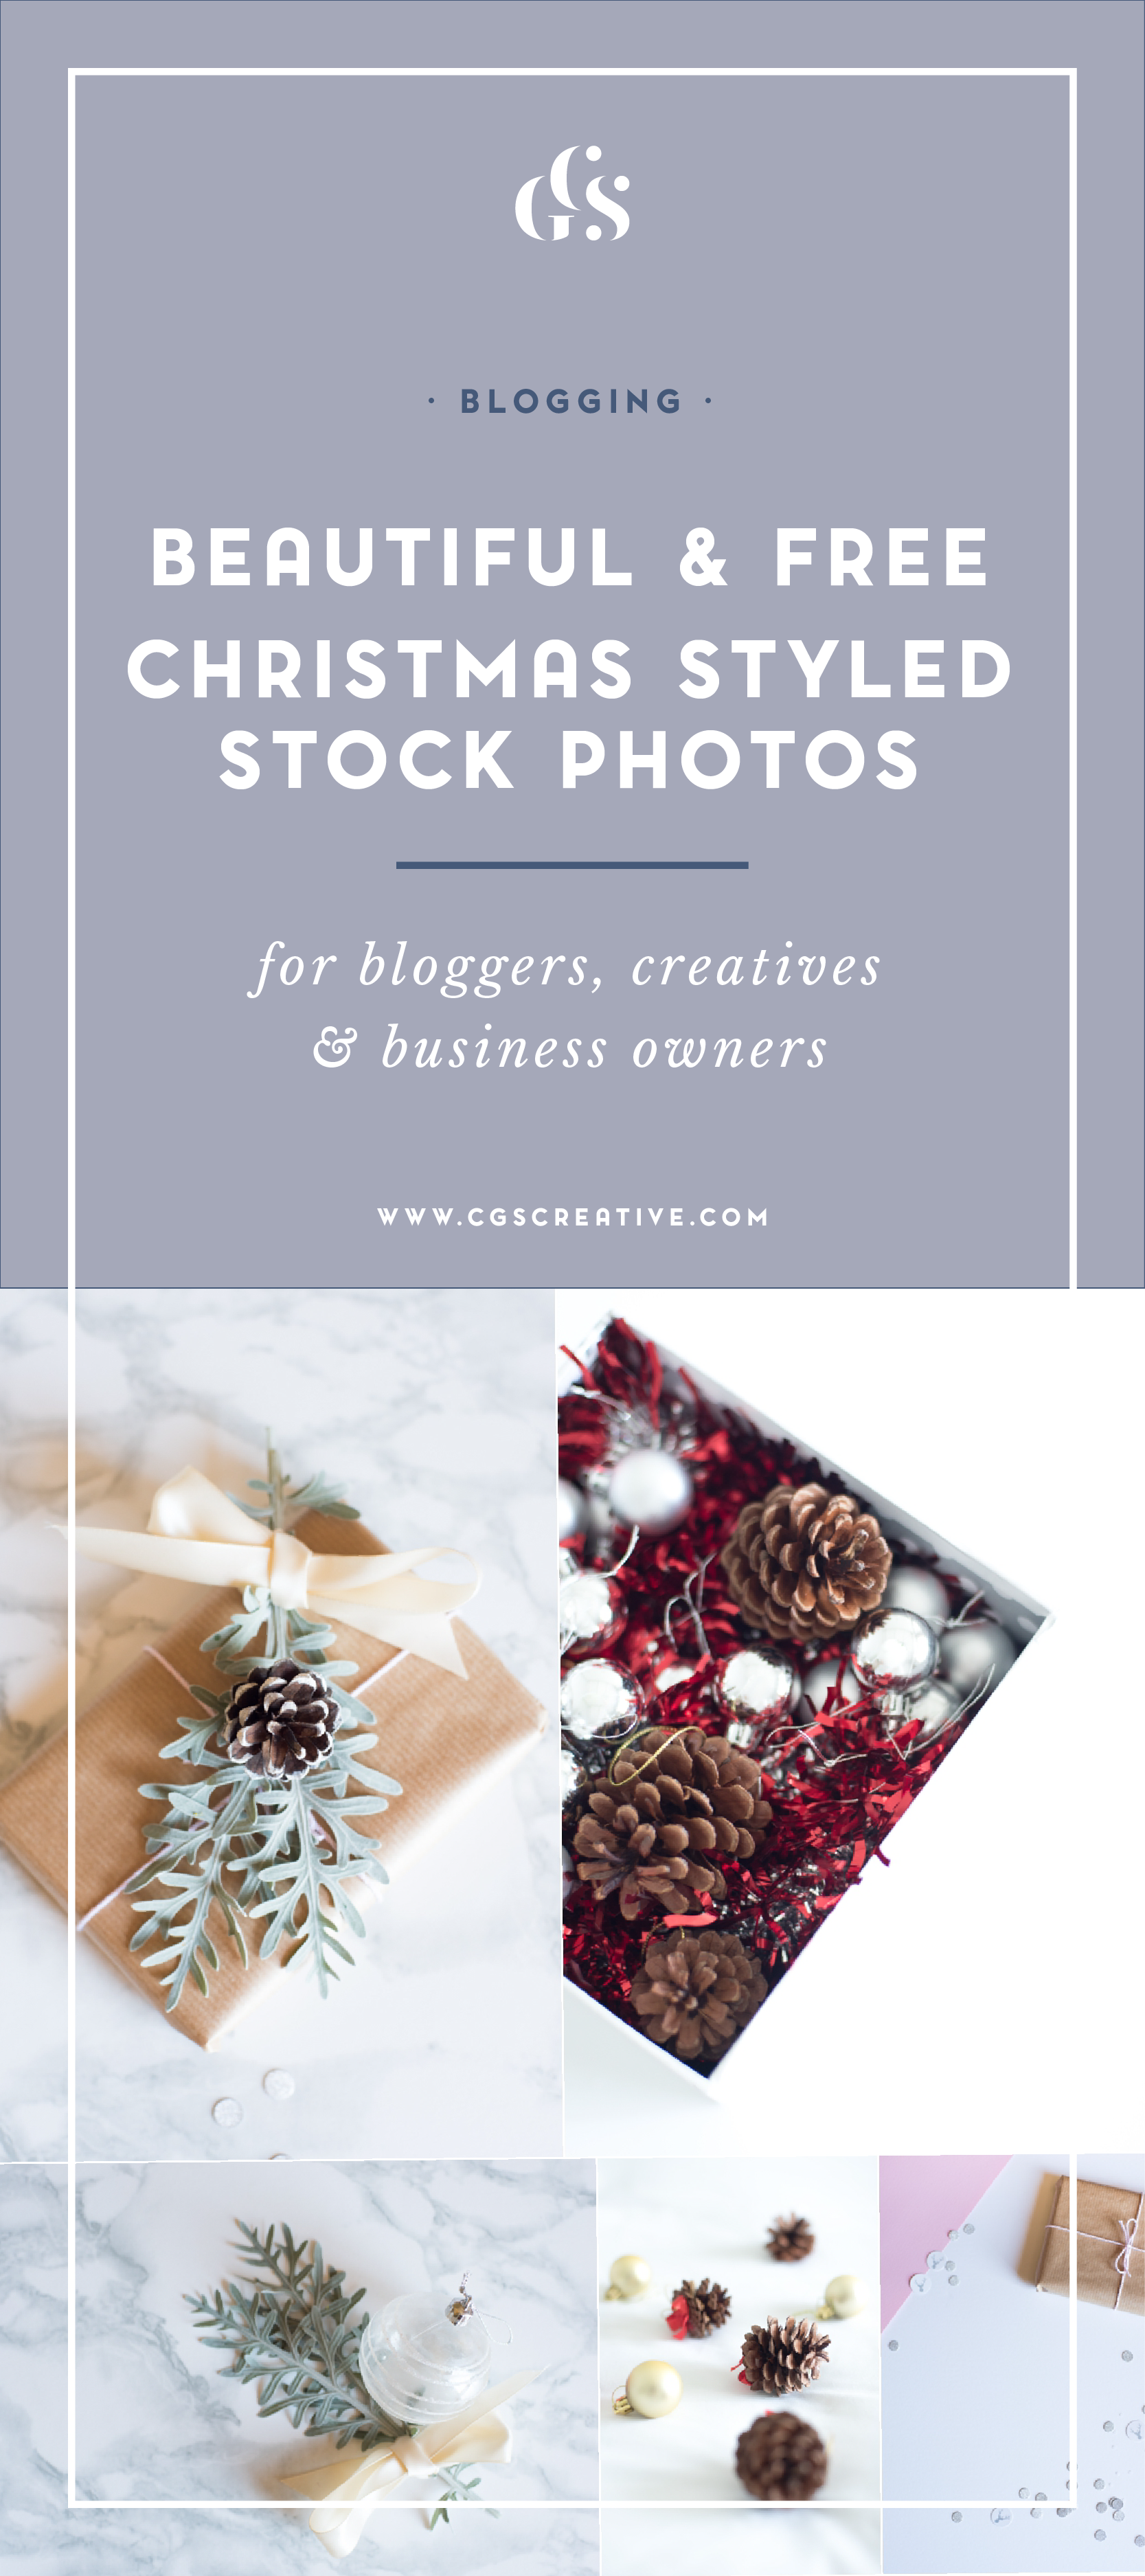 Beautiful & free christmas styled stock images for your blog, business or social medai